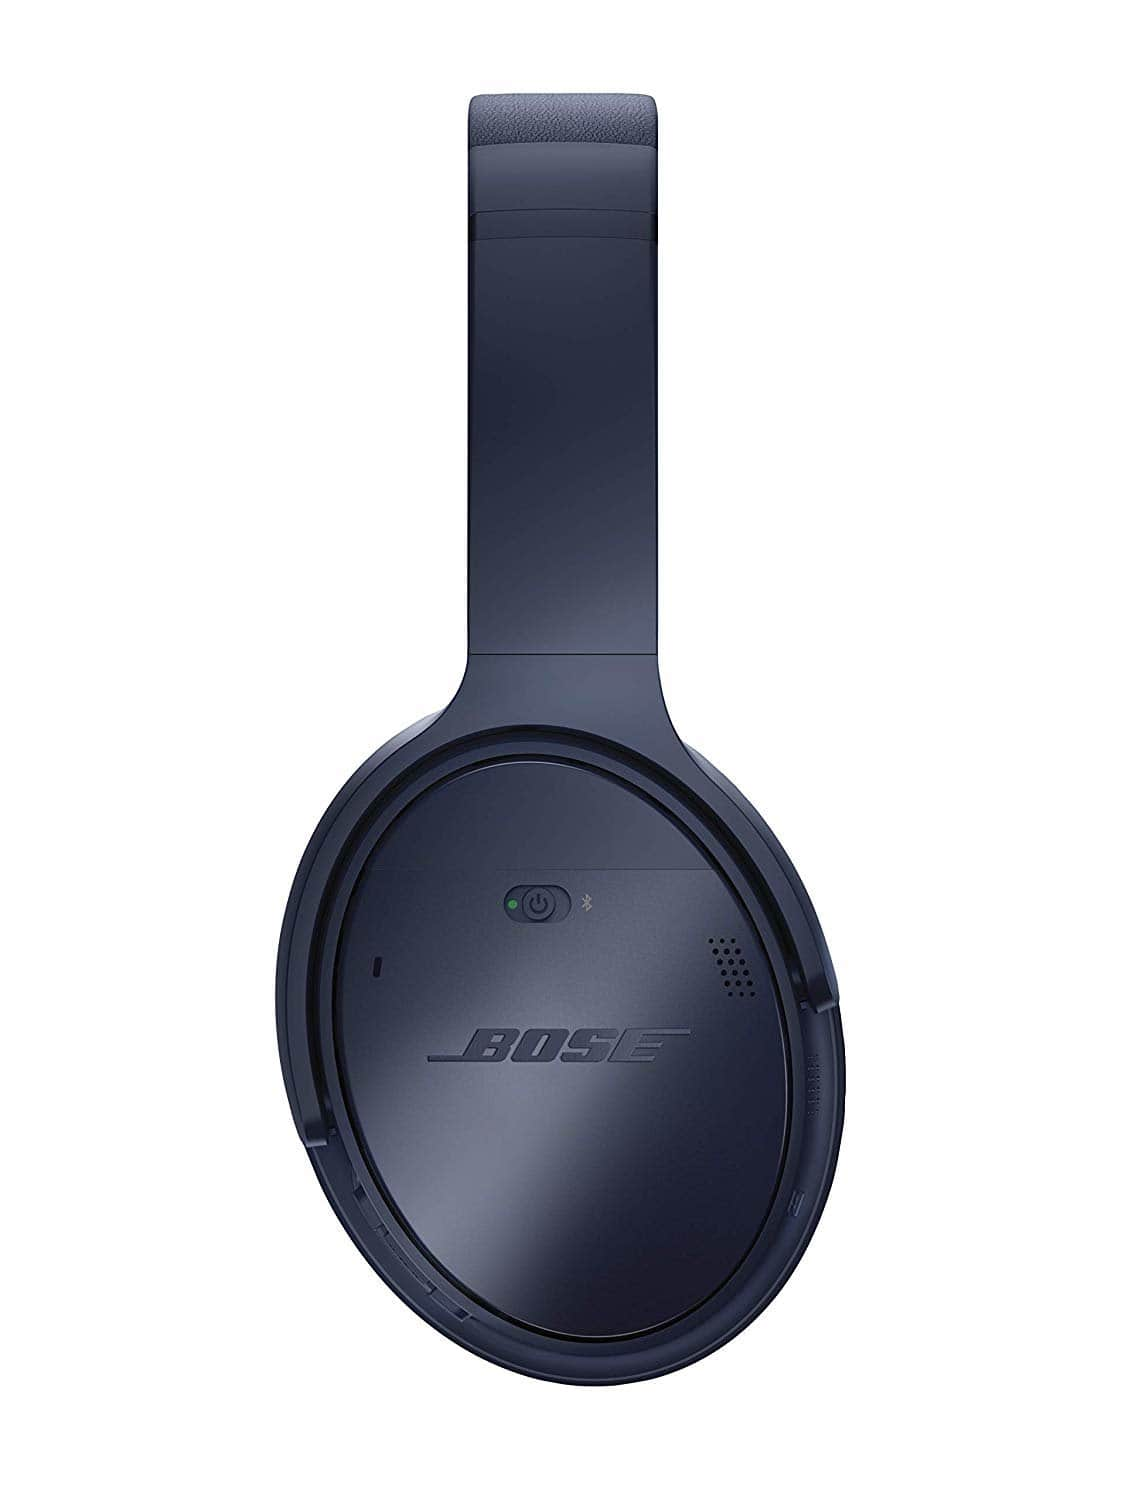 Bose QuietComfort 35 Series II Wireless Noise Cancelling Headphones (Black/ Triple Midnight/ Silver): $258.36 AC + Free Shipping